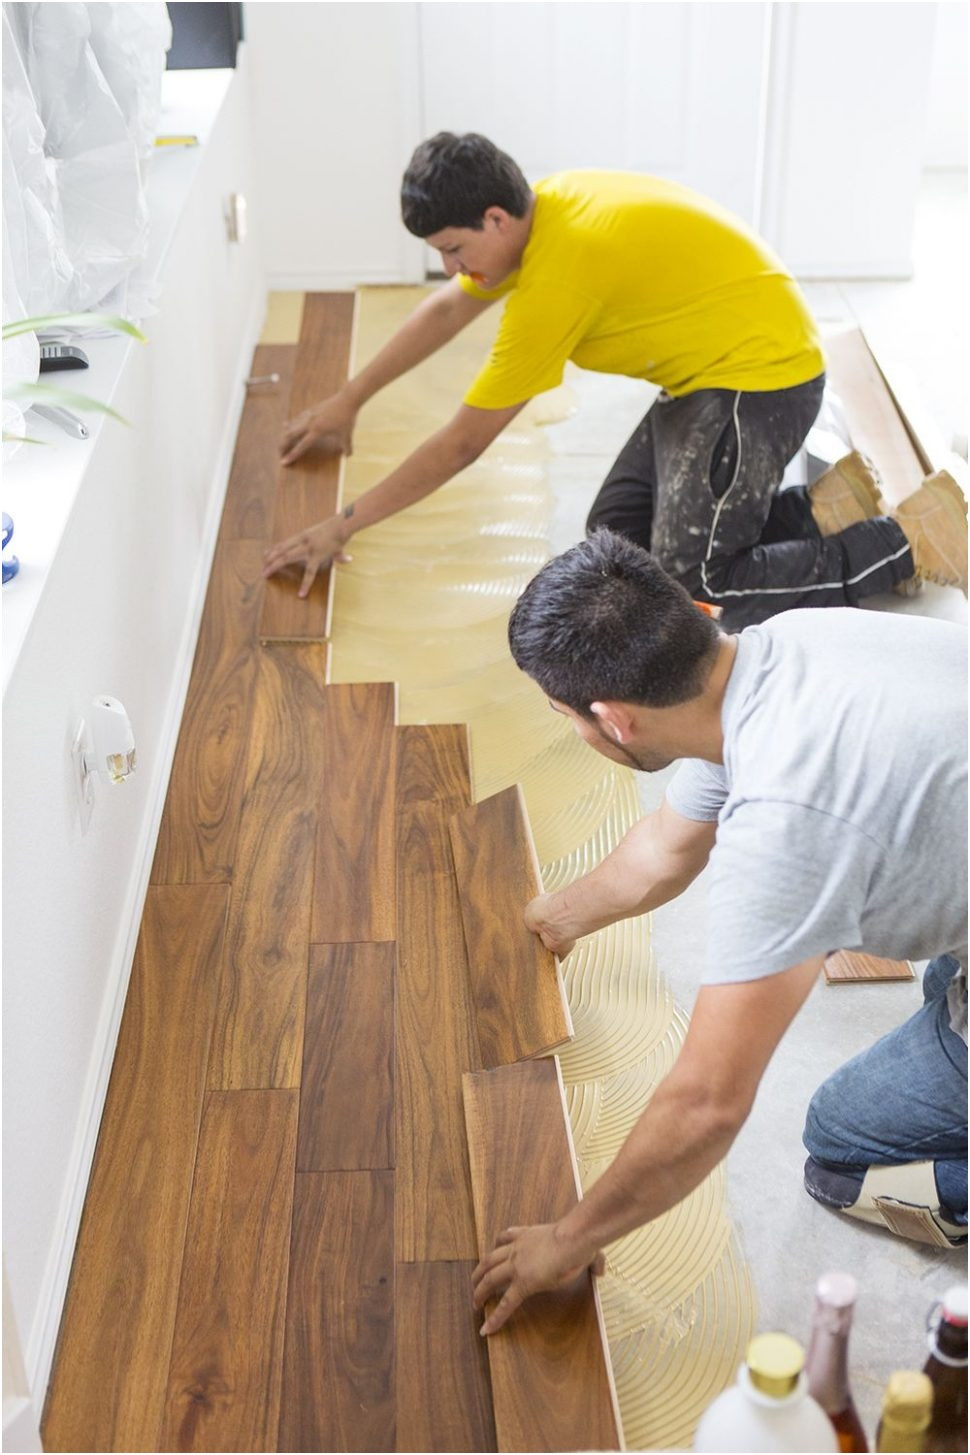 radiant heat and hardwood floors of best way to install engineered wood flooring over concrete how to in best way to install engineered wood flooring over concrete galerie floor installdwood flooring over tile floors